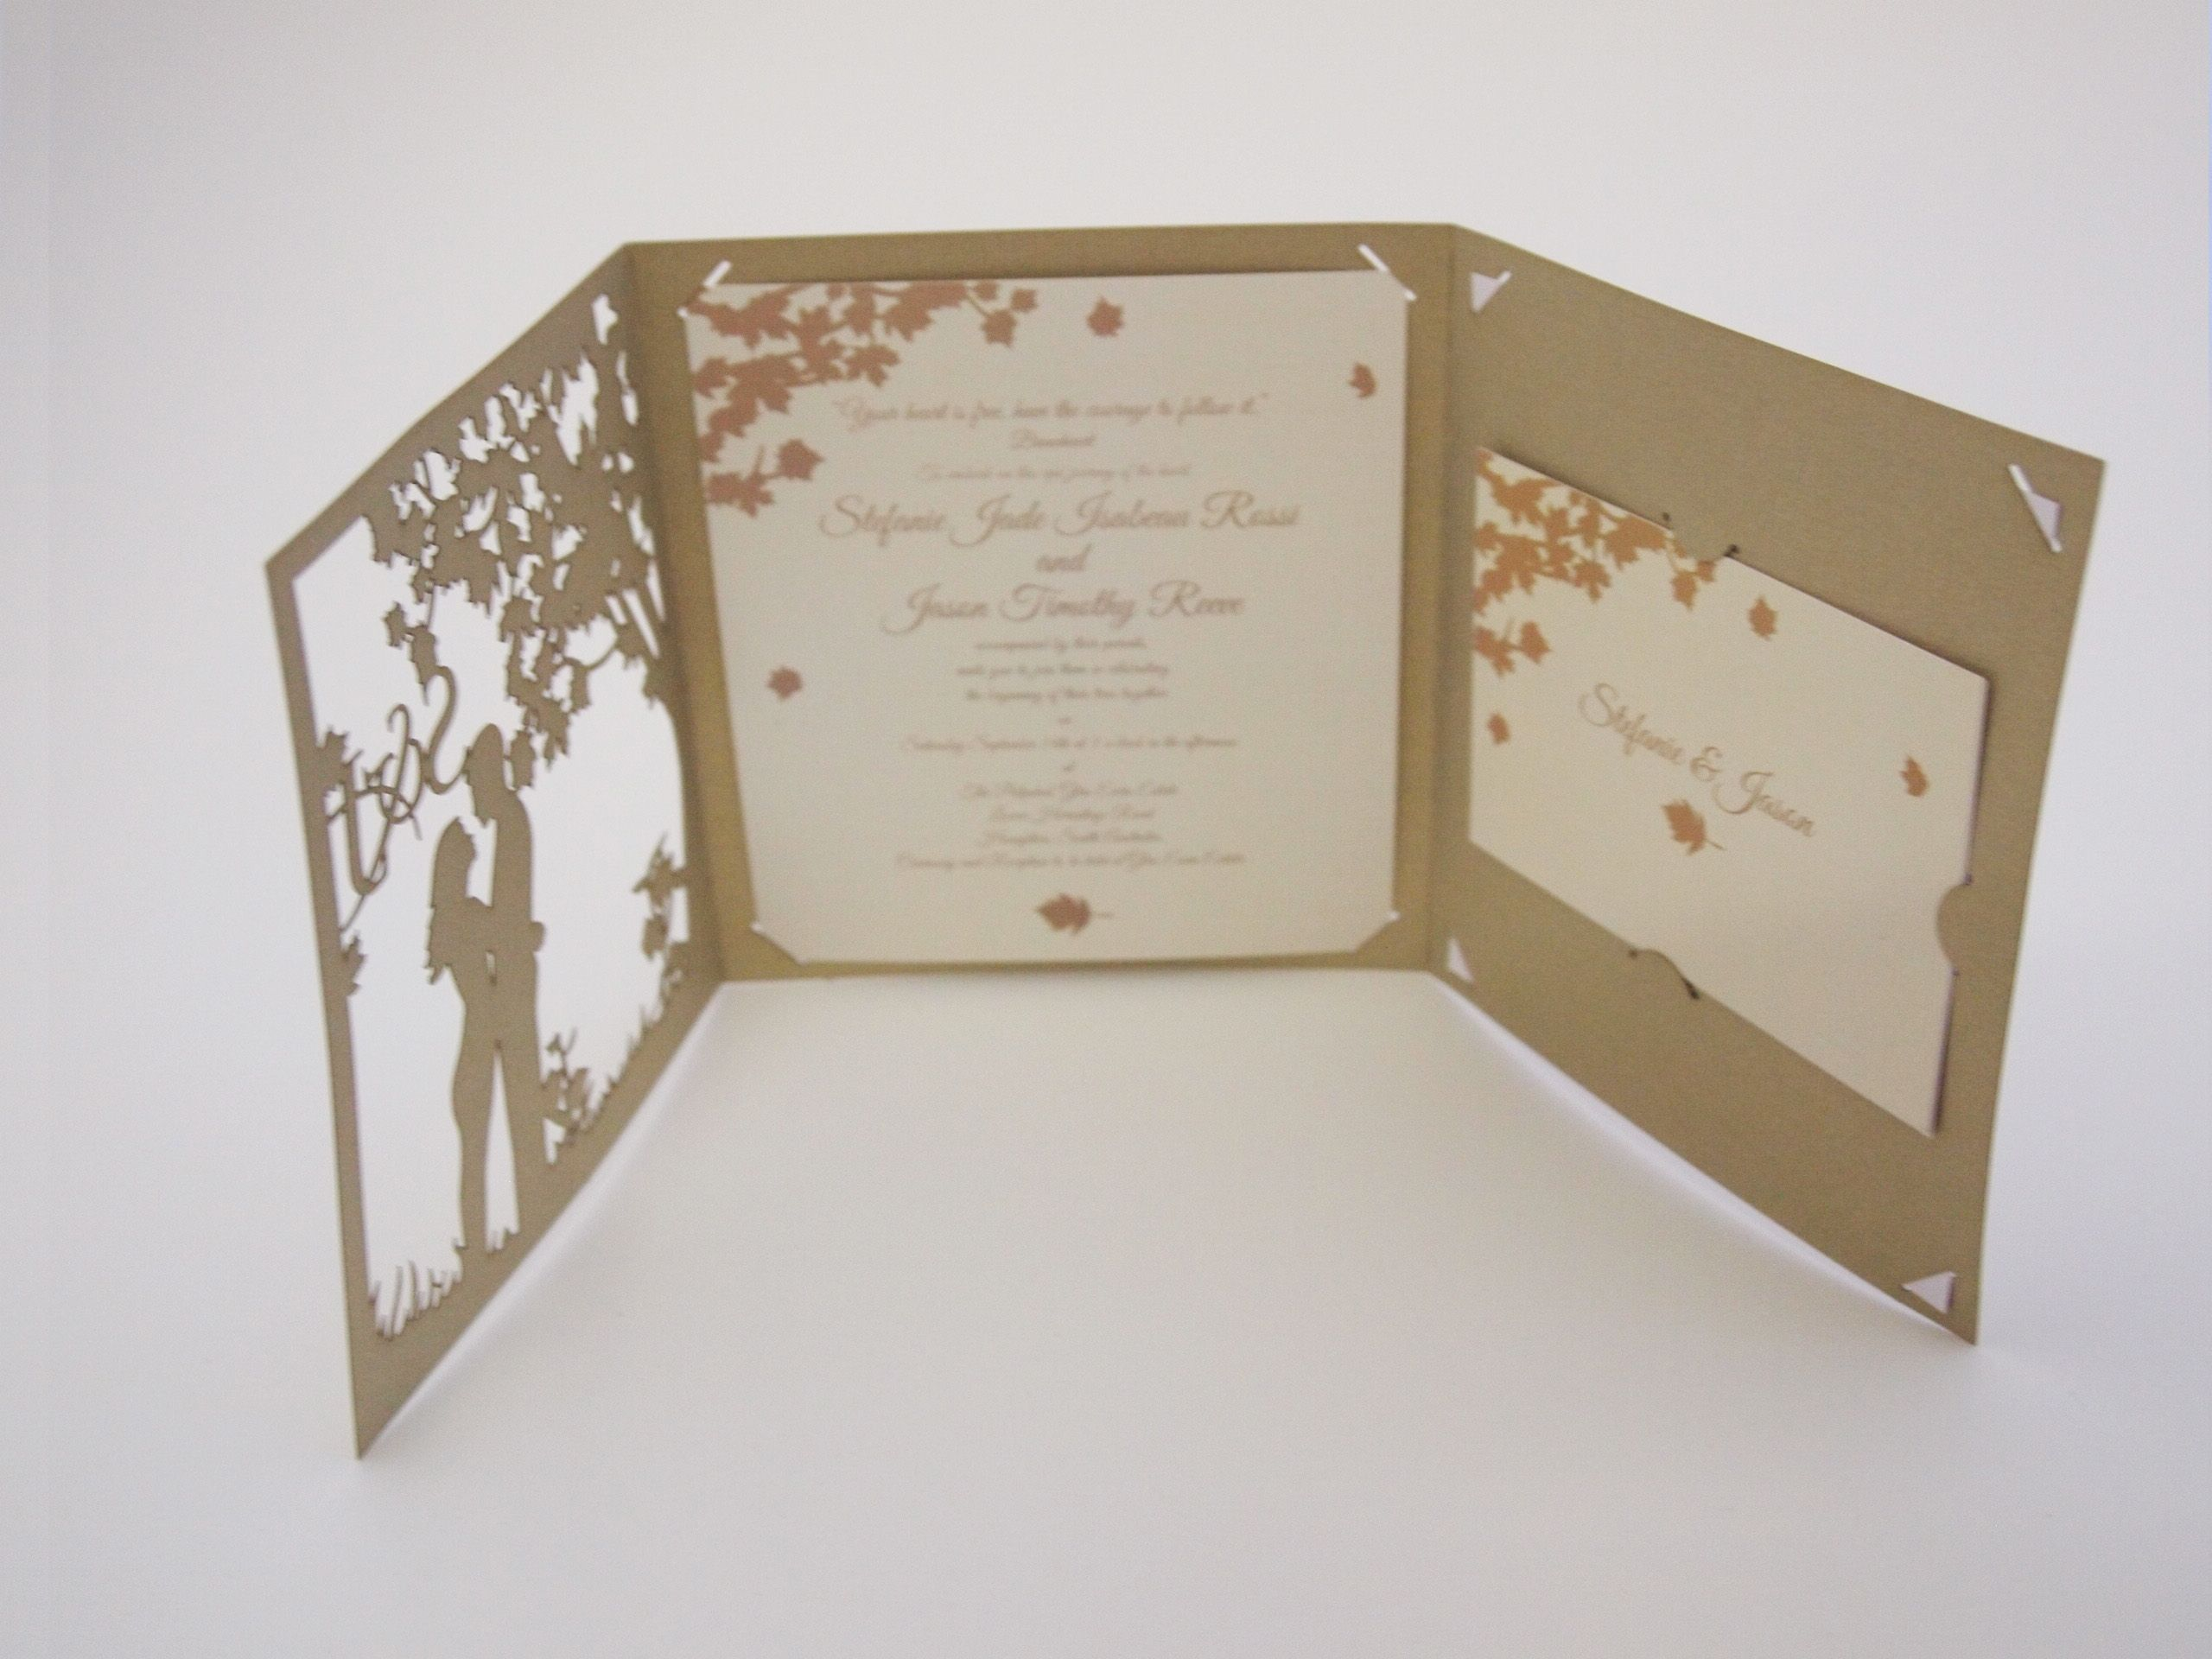 wedding invitation overlay booklet australia google With booklet wedding invitations australia